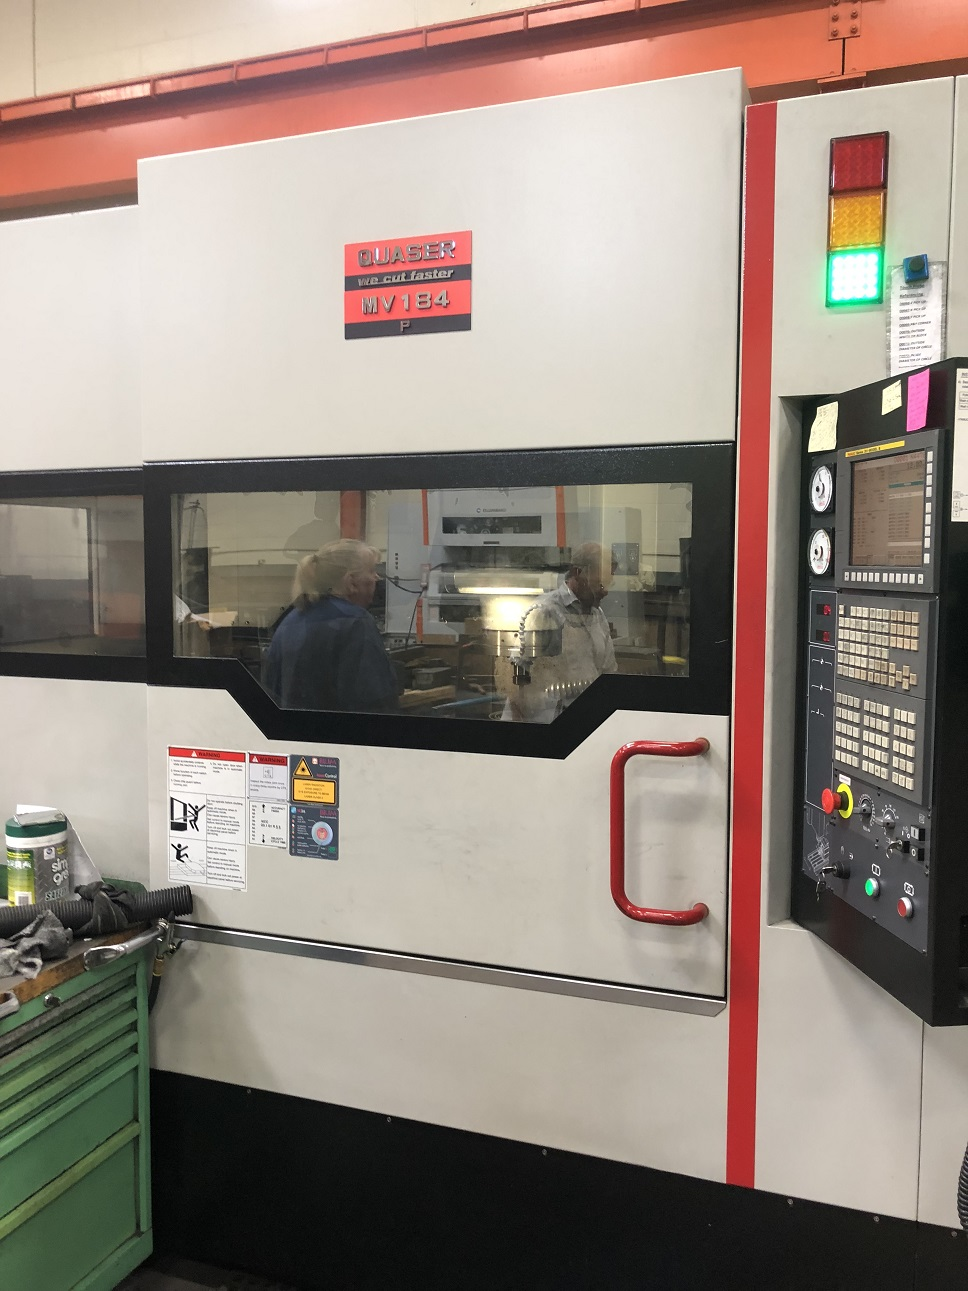 "QUASER 184P/15C CNC VERTICAL MACHINING CENTER WITH 10"" ROTARY TABLE, Fanuc 31iMB, 40""/24""/24"" Travels, 15K Spindle, 20 HP, 30 ATC, 40 Taper, AICC, CTS, Scales, Probe, Chiller, 2013"